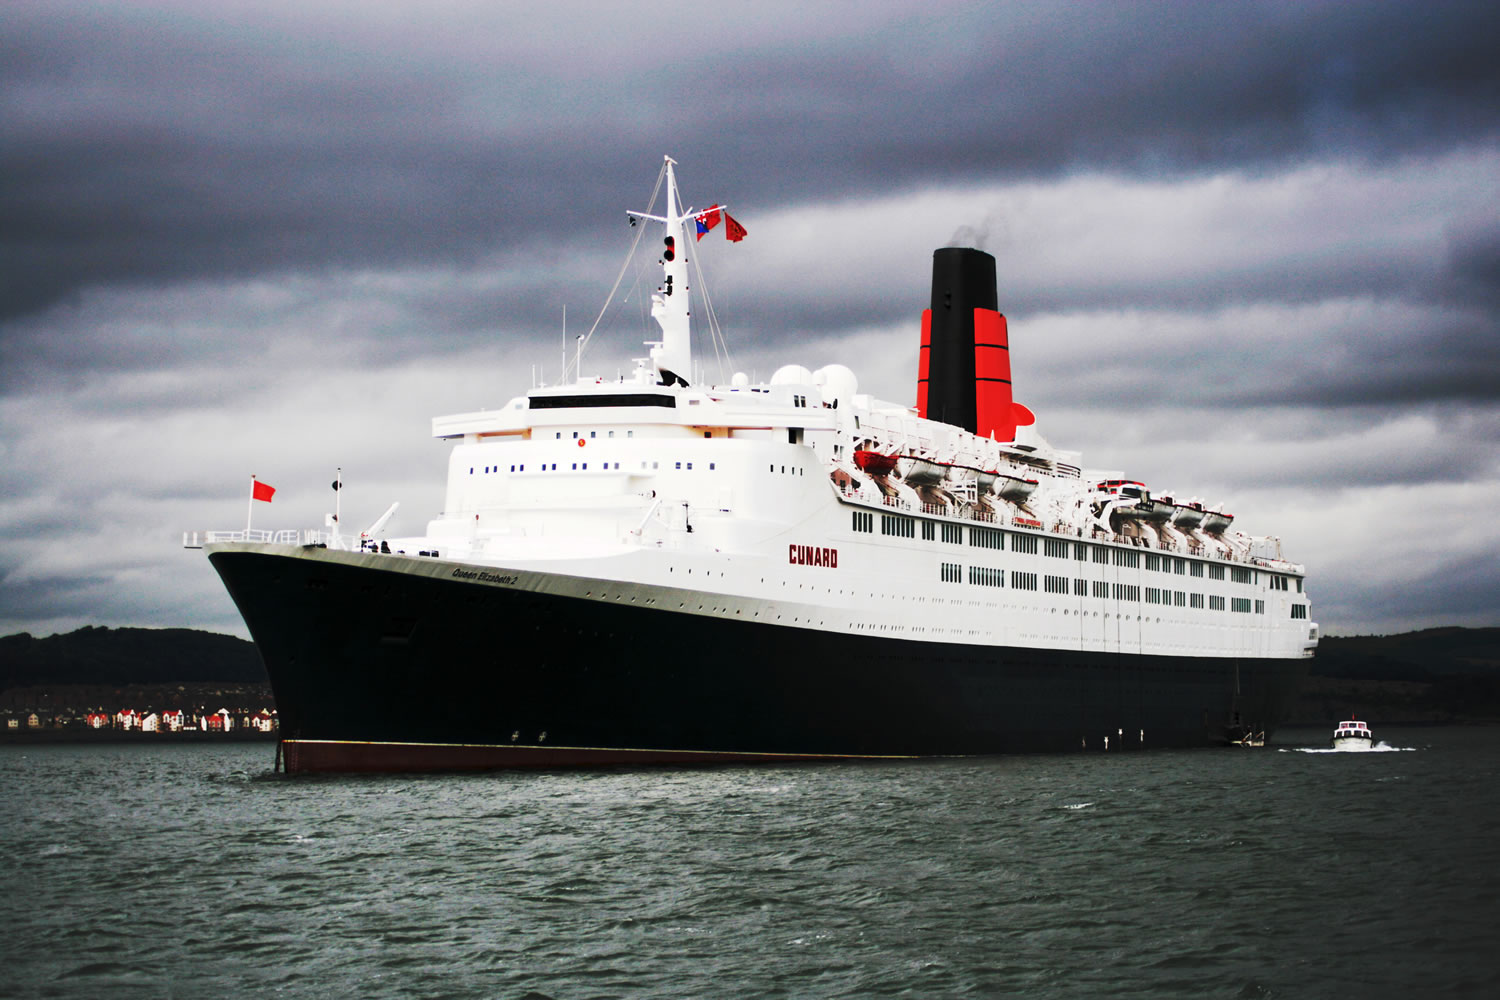 http://upload.wikimedia.org/wikipedia/commons/4/43/QE2-South_Queensferry.jpg